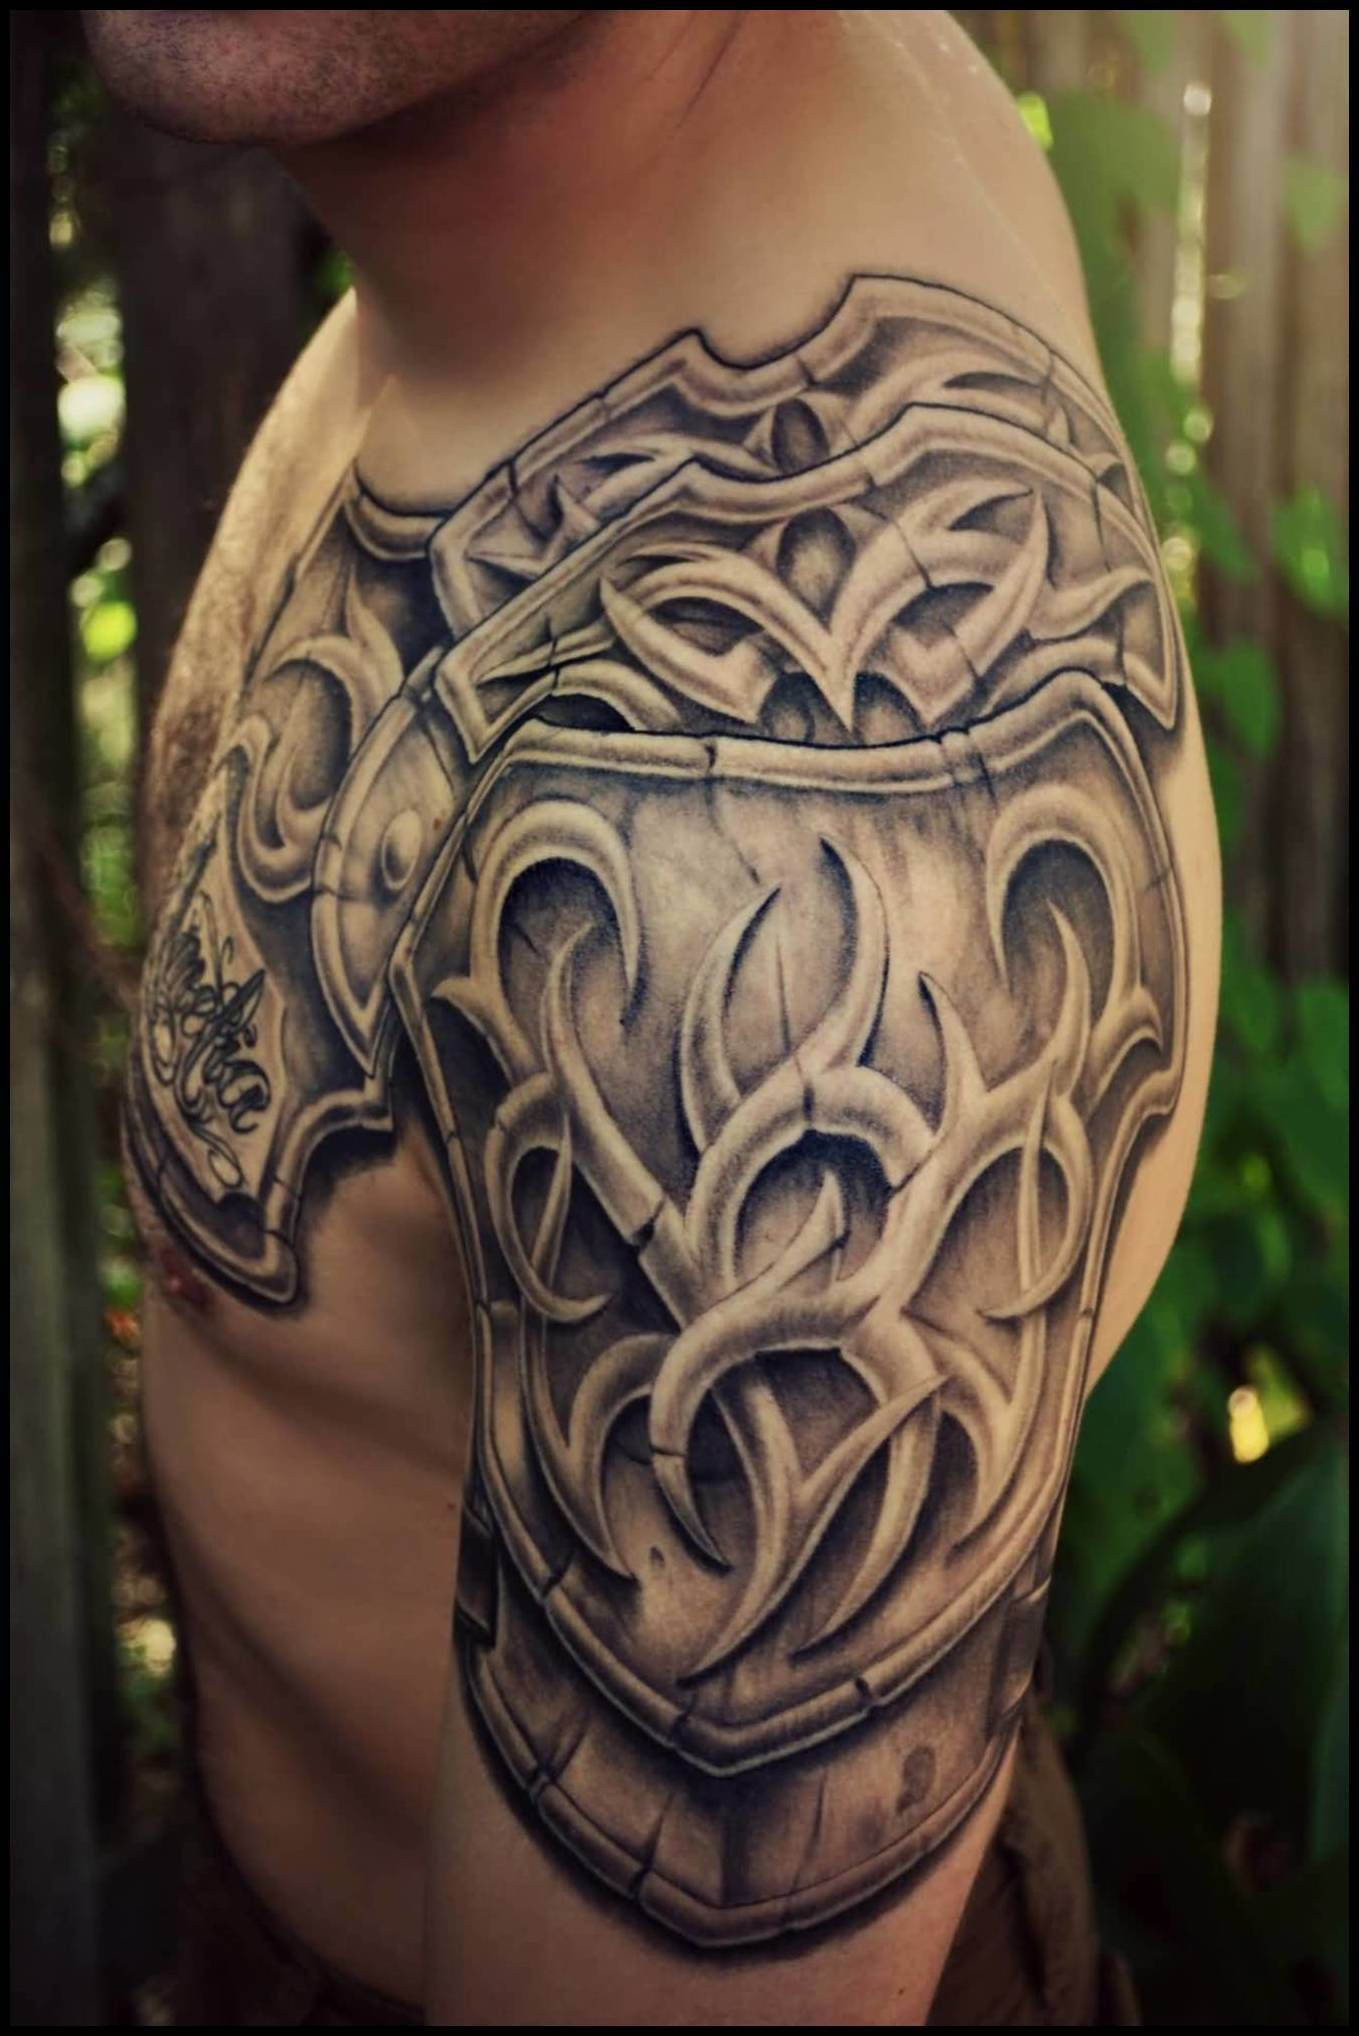 Coolest tattoo ideas ever tattoos for men  back tattoos for men and women   places on where